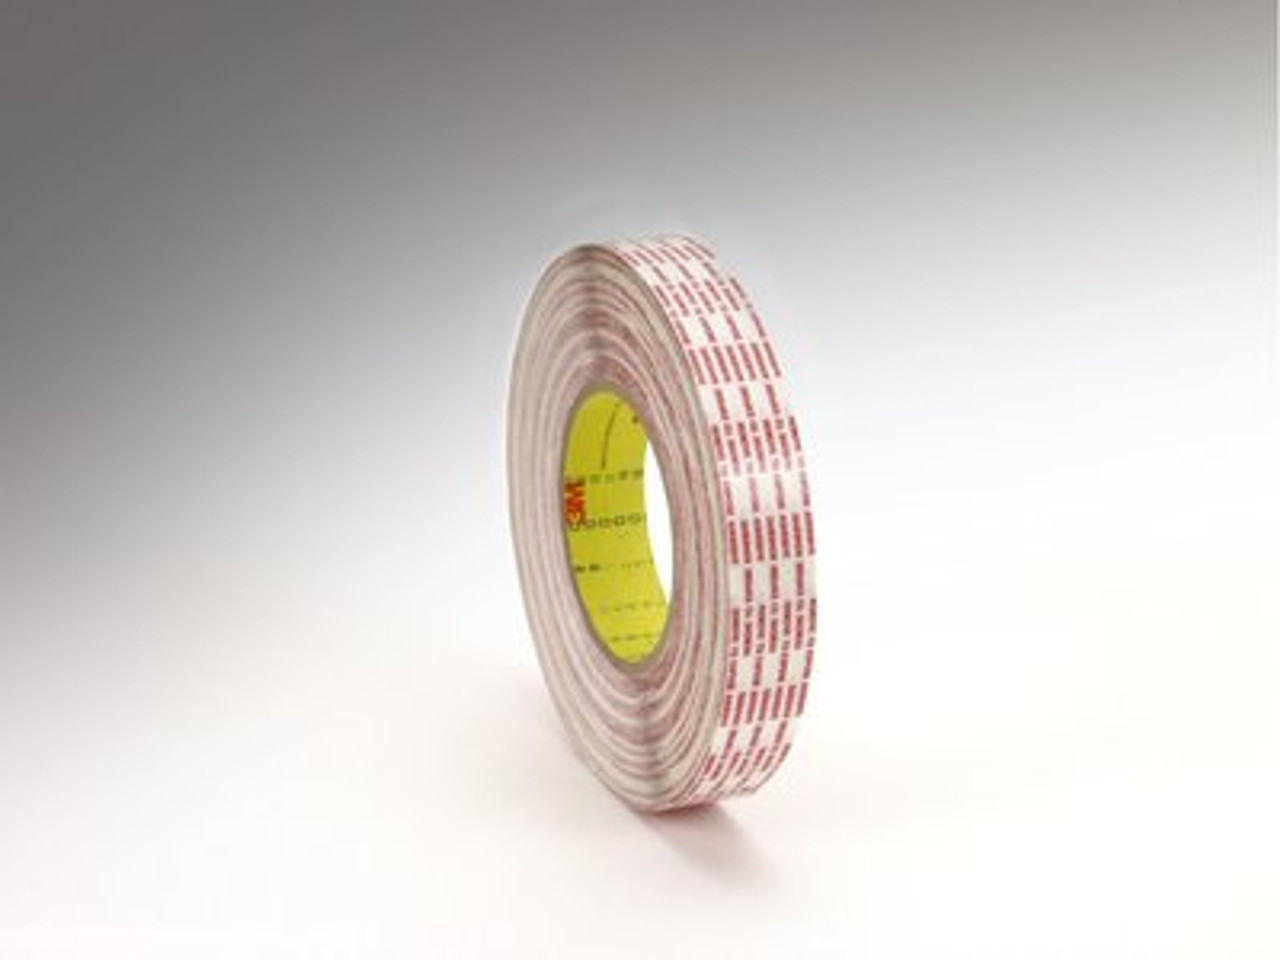 3M™ Double Coated Tape Extended Liner 476XL Translucent, 3/4 in x 60 yd 6.0 mil